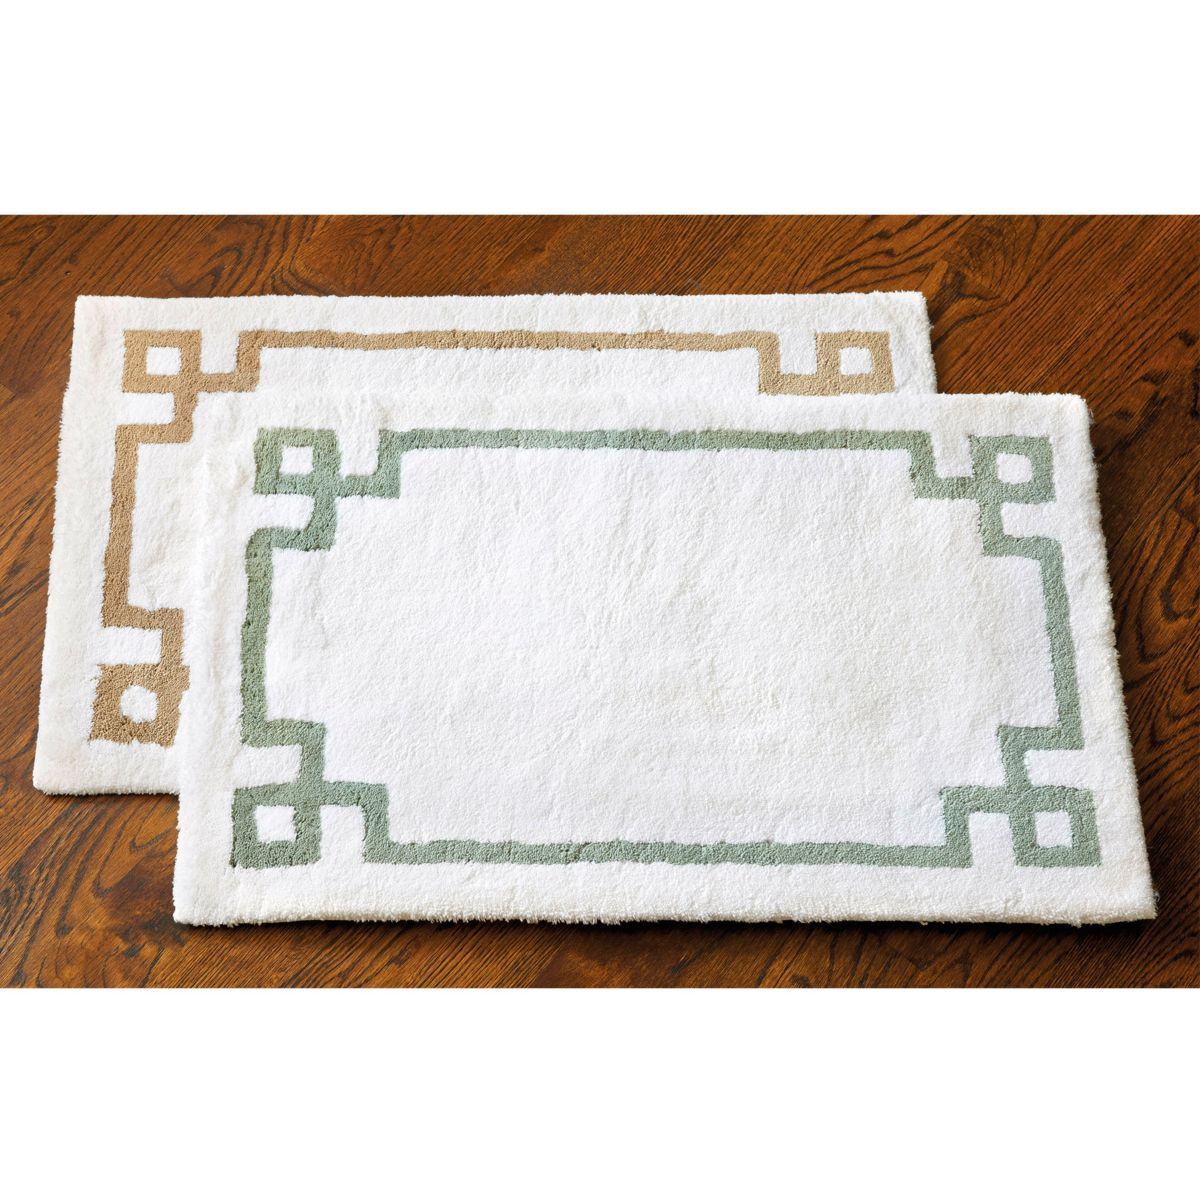 Suzanne Kasler Greek Key Bath Mat | HOME: Furniture & Decor ...